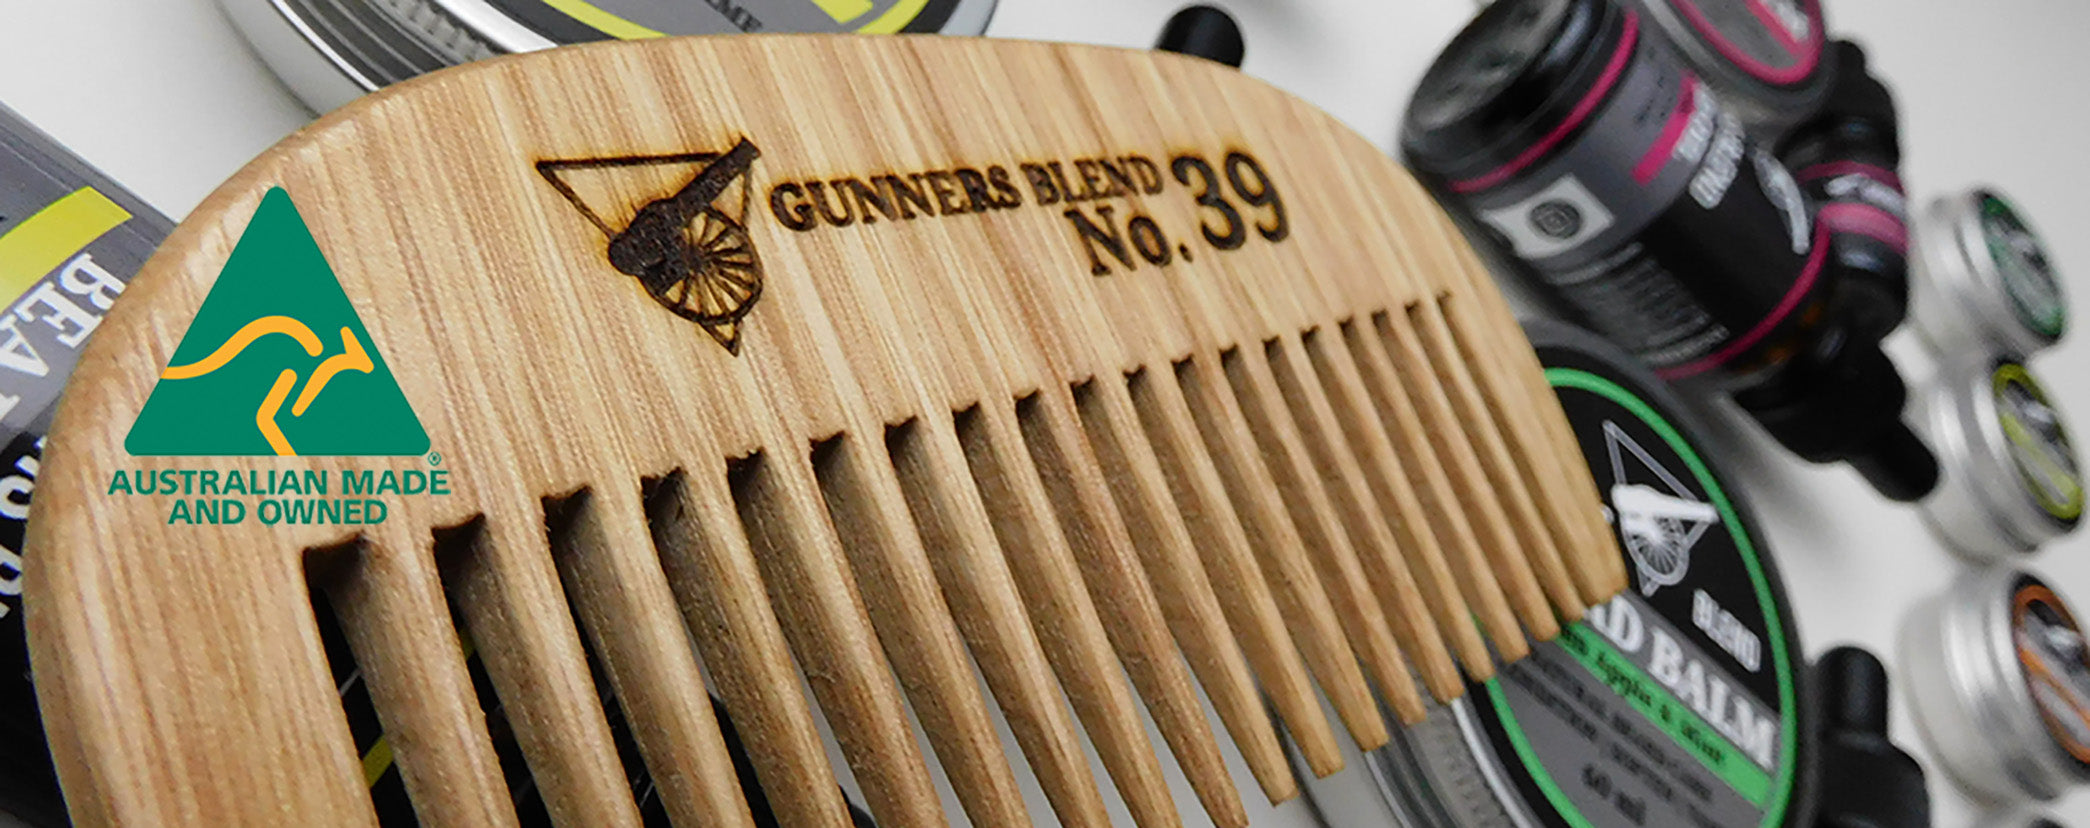 Gunners Blend Barber Shop Supplies